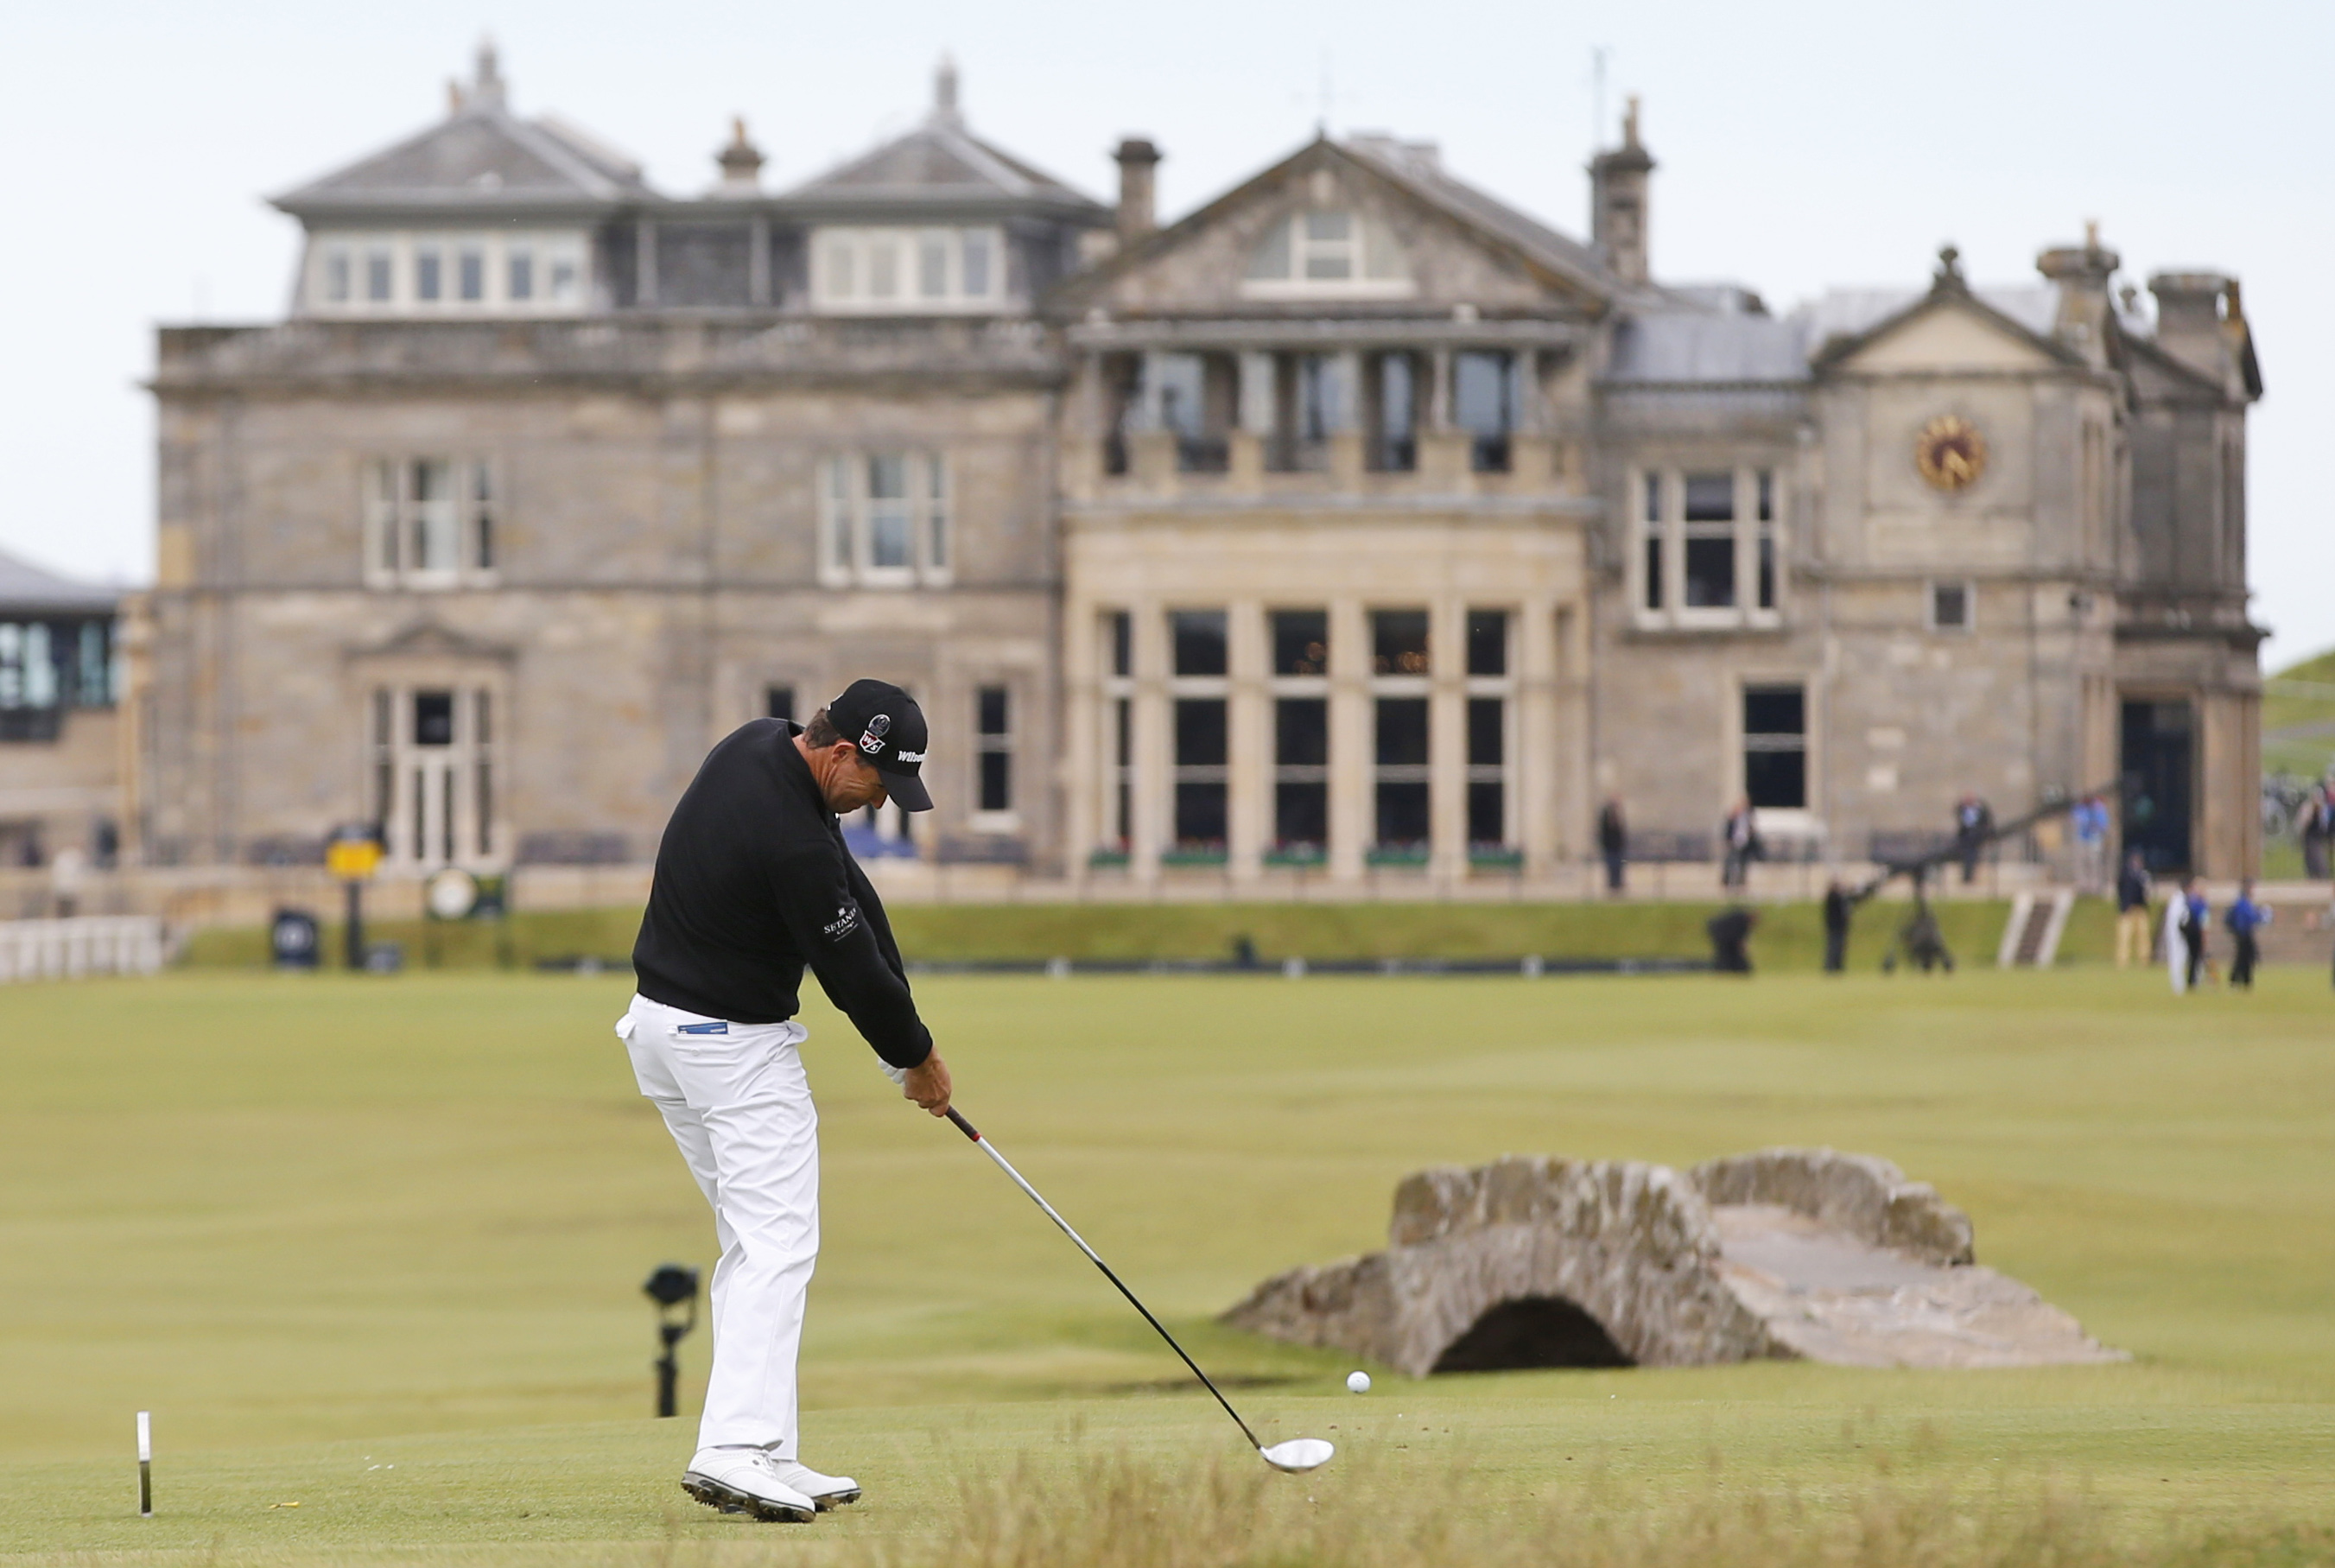 Ireland's Padraig Harrington plays from the 18th tee during the third round of the British Open Golf Championship at the Old Course, St. Andrews, Scotland, Sunday, July 19, 2015. (AP Photo/Alastair Grant)